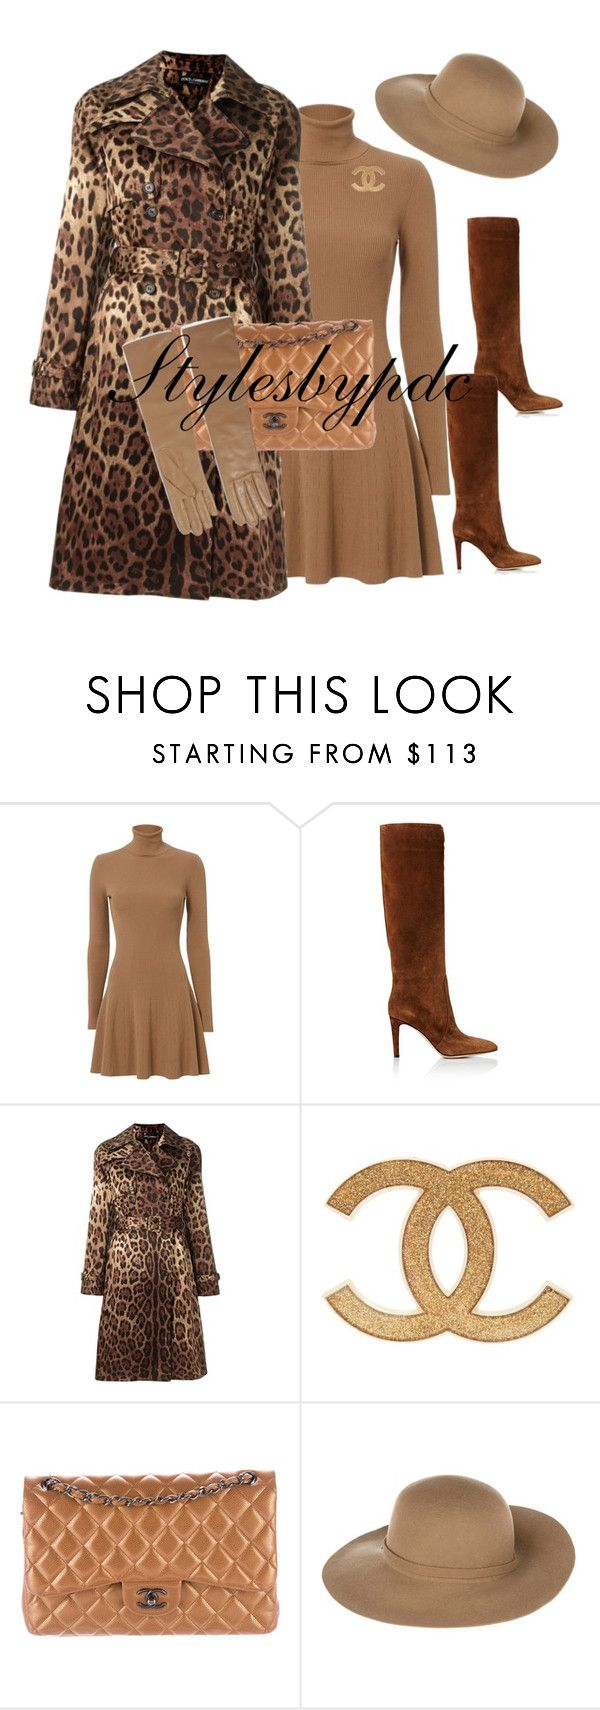 """""""Winter Church Style..."""" by stylesbypdc ❤ liked on Polyvore featuring A.L.C., Gianvito Rossi, Dolce&Gabbana, Chanel, Armani Jeans and Causse"""